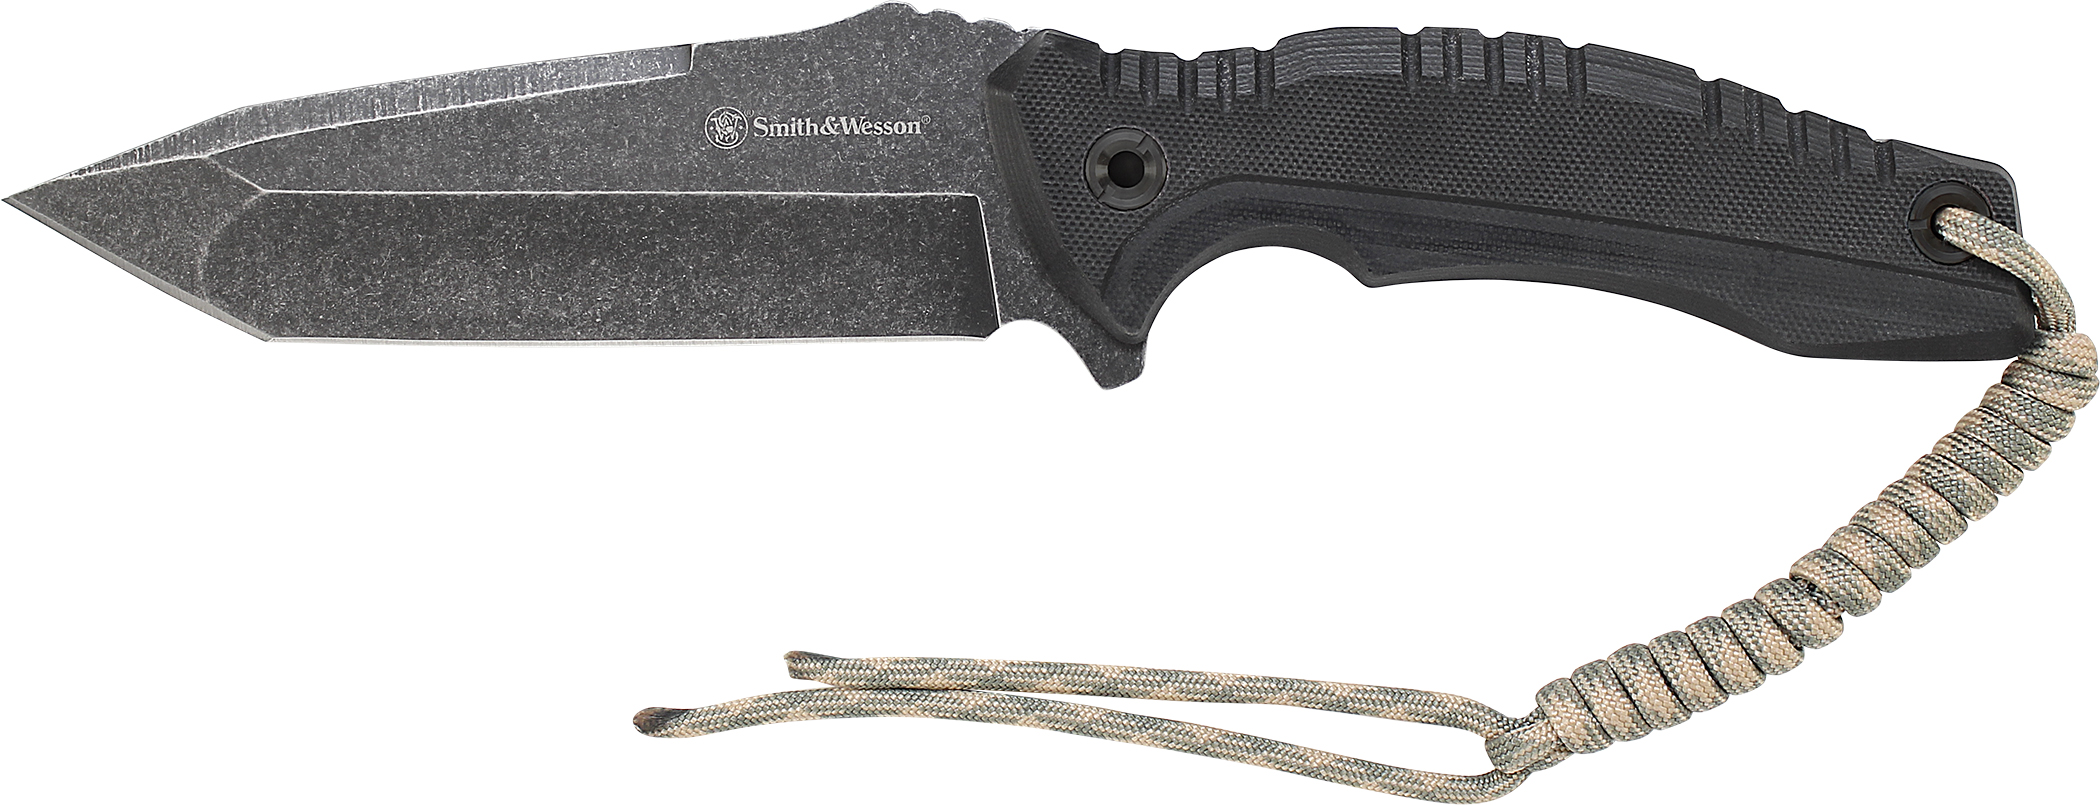 SWF603 - Smith & Wesson Fixed Blade, Stone Washed 8Cr13MoV Tanto Blade, Thumb Knobs, Index Flipper, G10 Handle